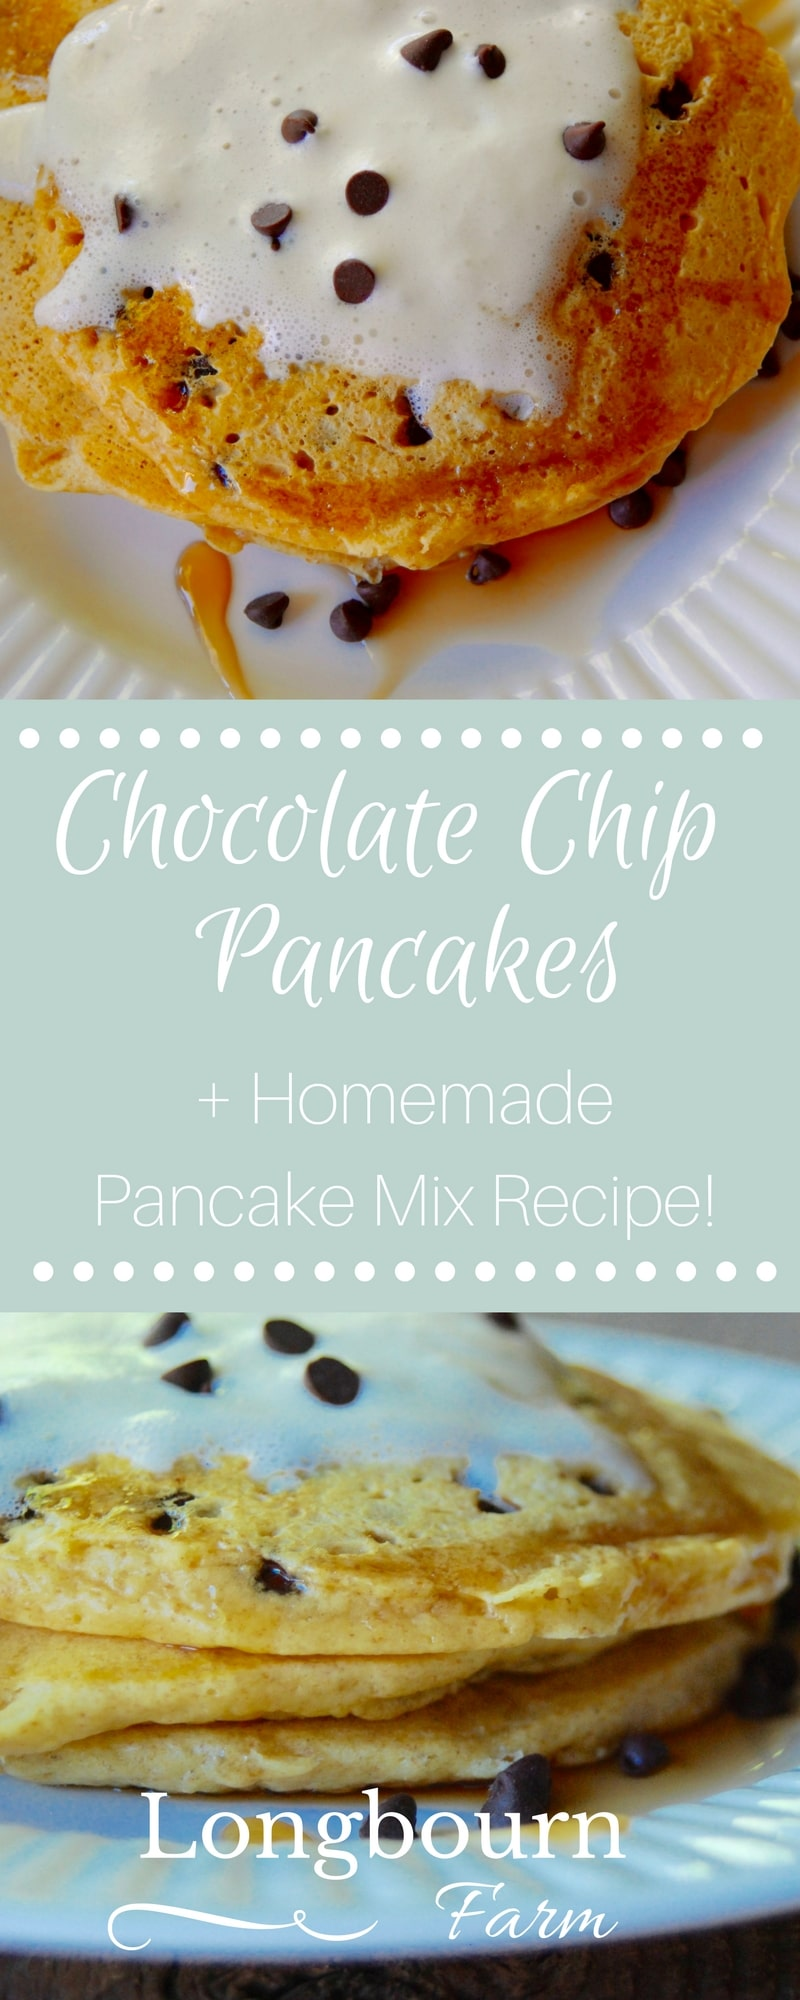 This homemade chocolate chip pancake mix recipe turns out every time and will be a family favorite! Easily customize the mix to your preference! via @longbournfarm